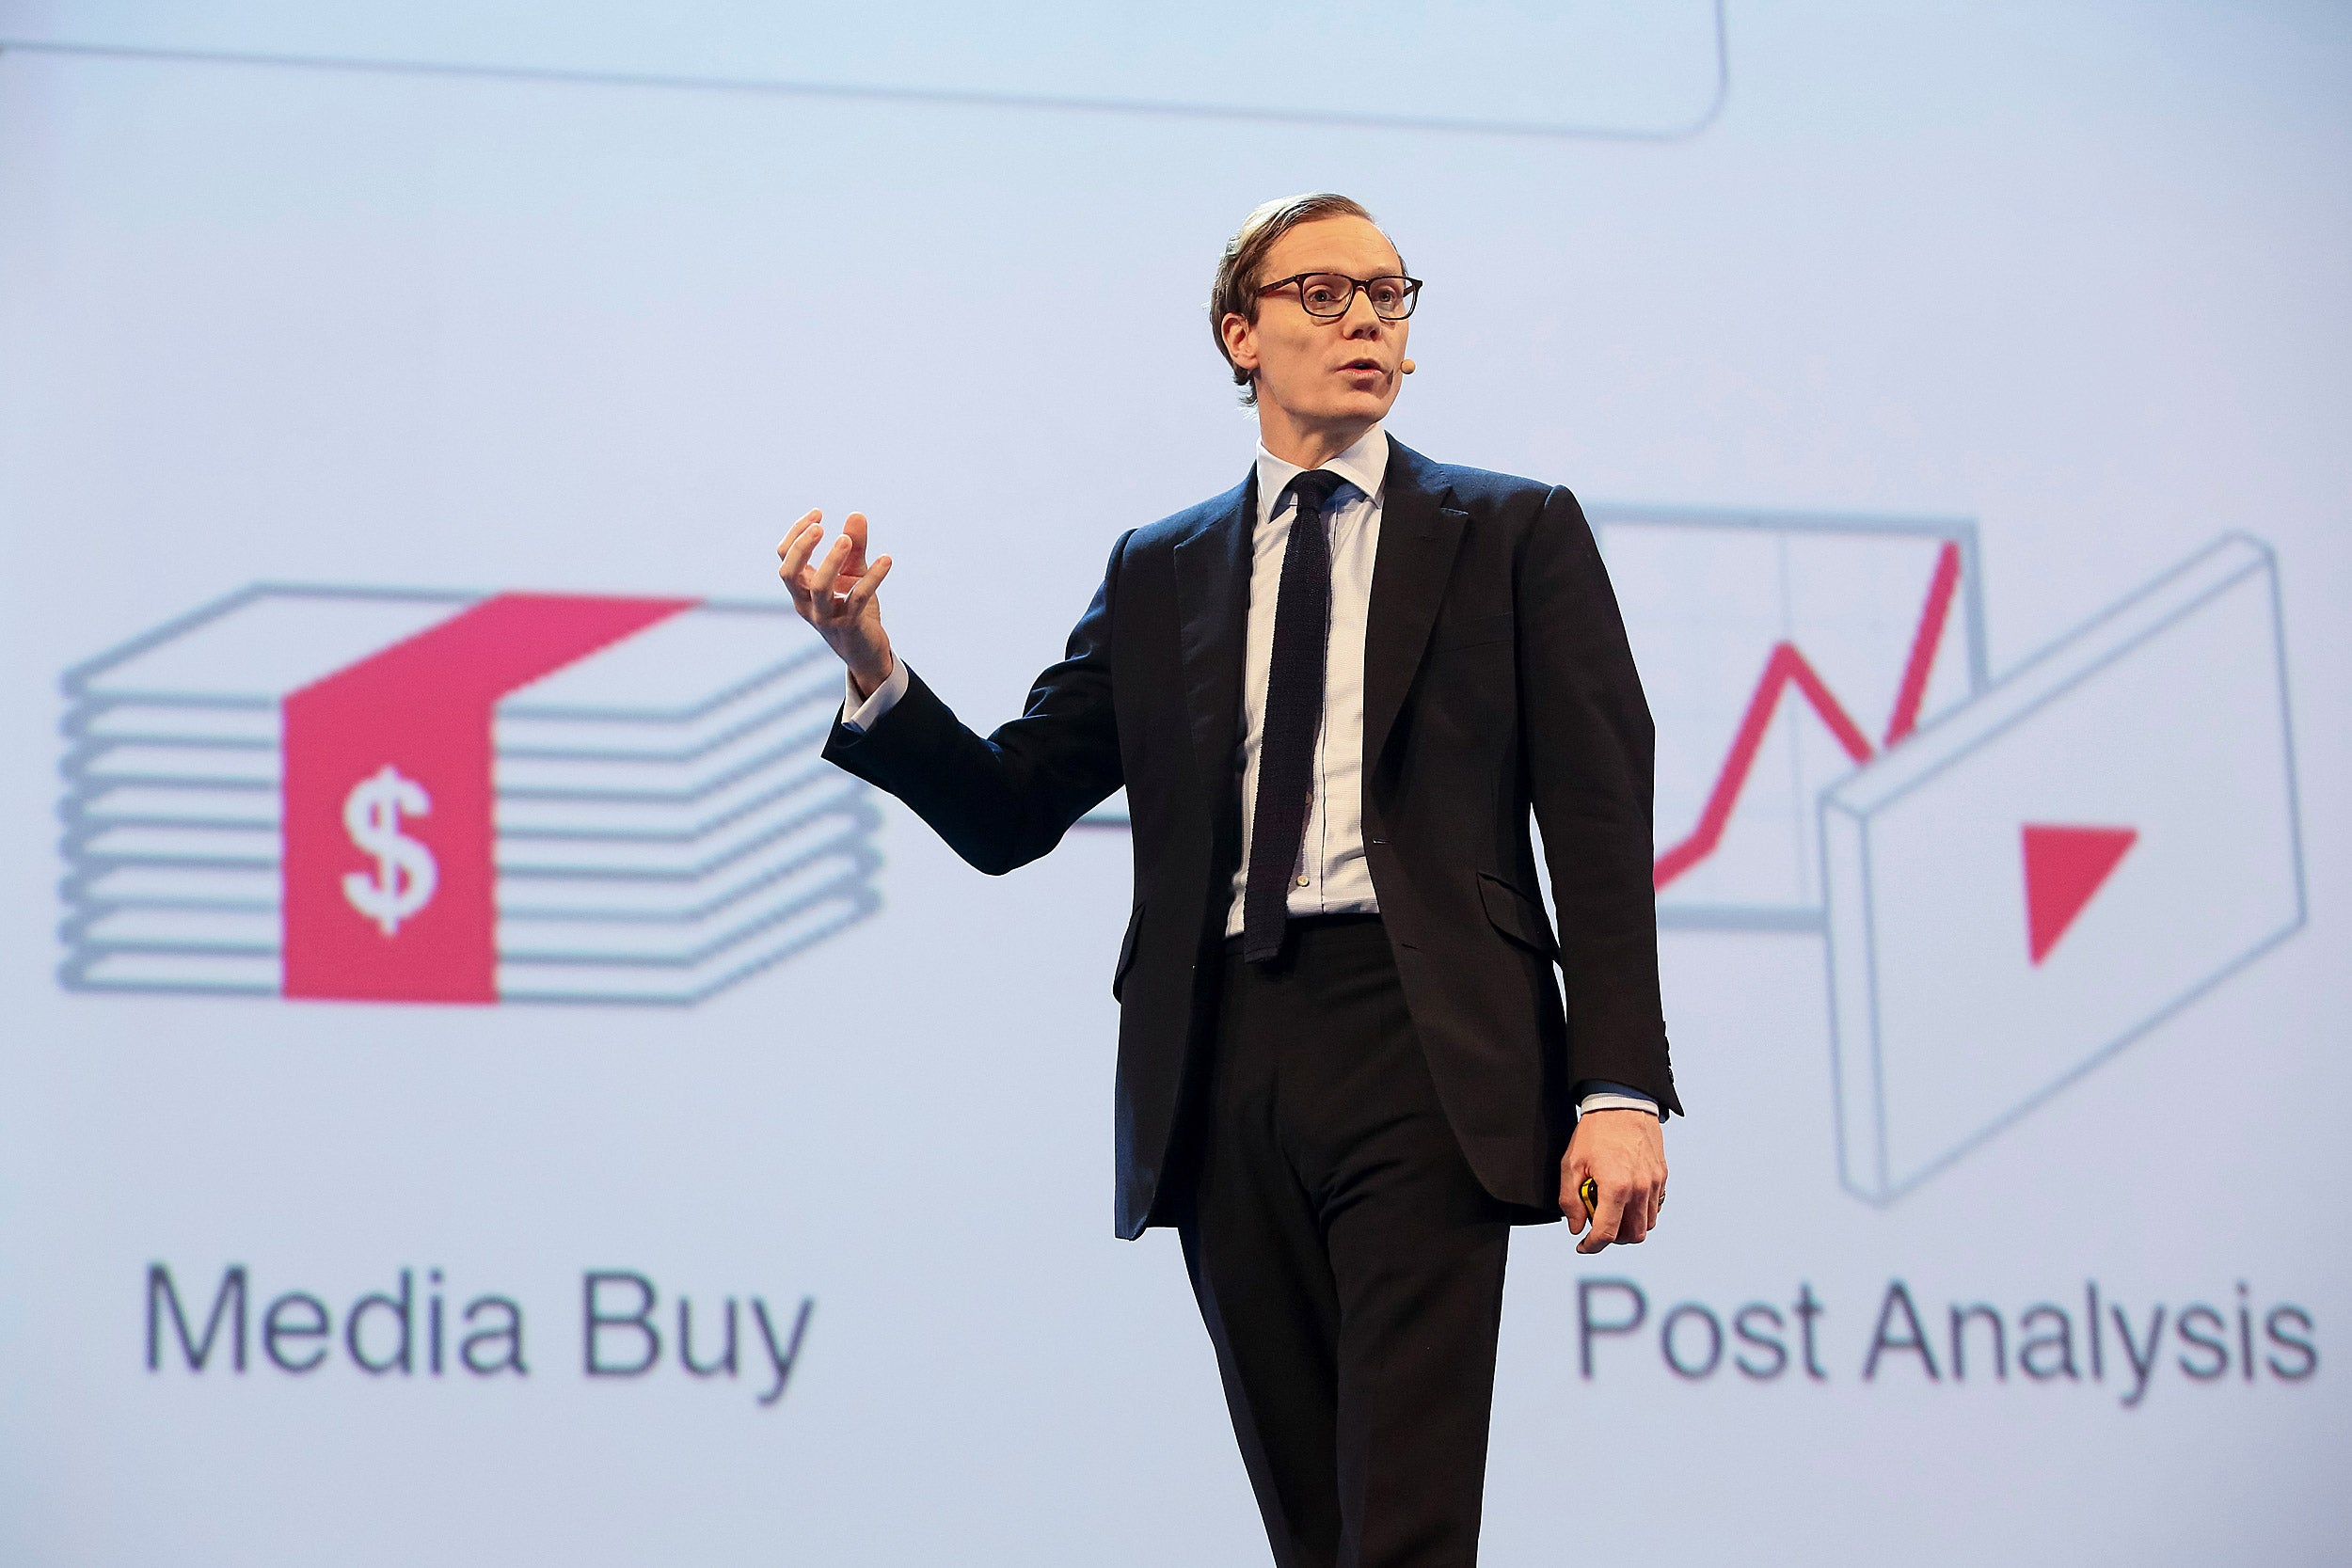 Cambridge Analytics CEO Alexander Nix (pictured) said his firm found a way to tailor political ads and messages on Facebook to millions of voters in the U.S., based on their fears and prejudices.